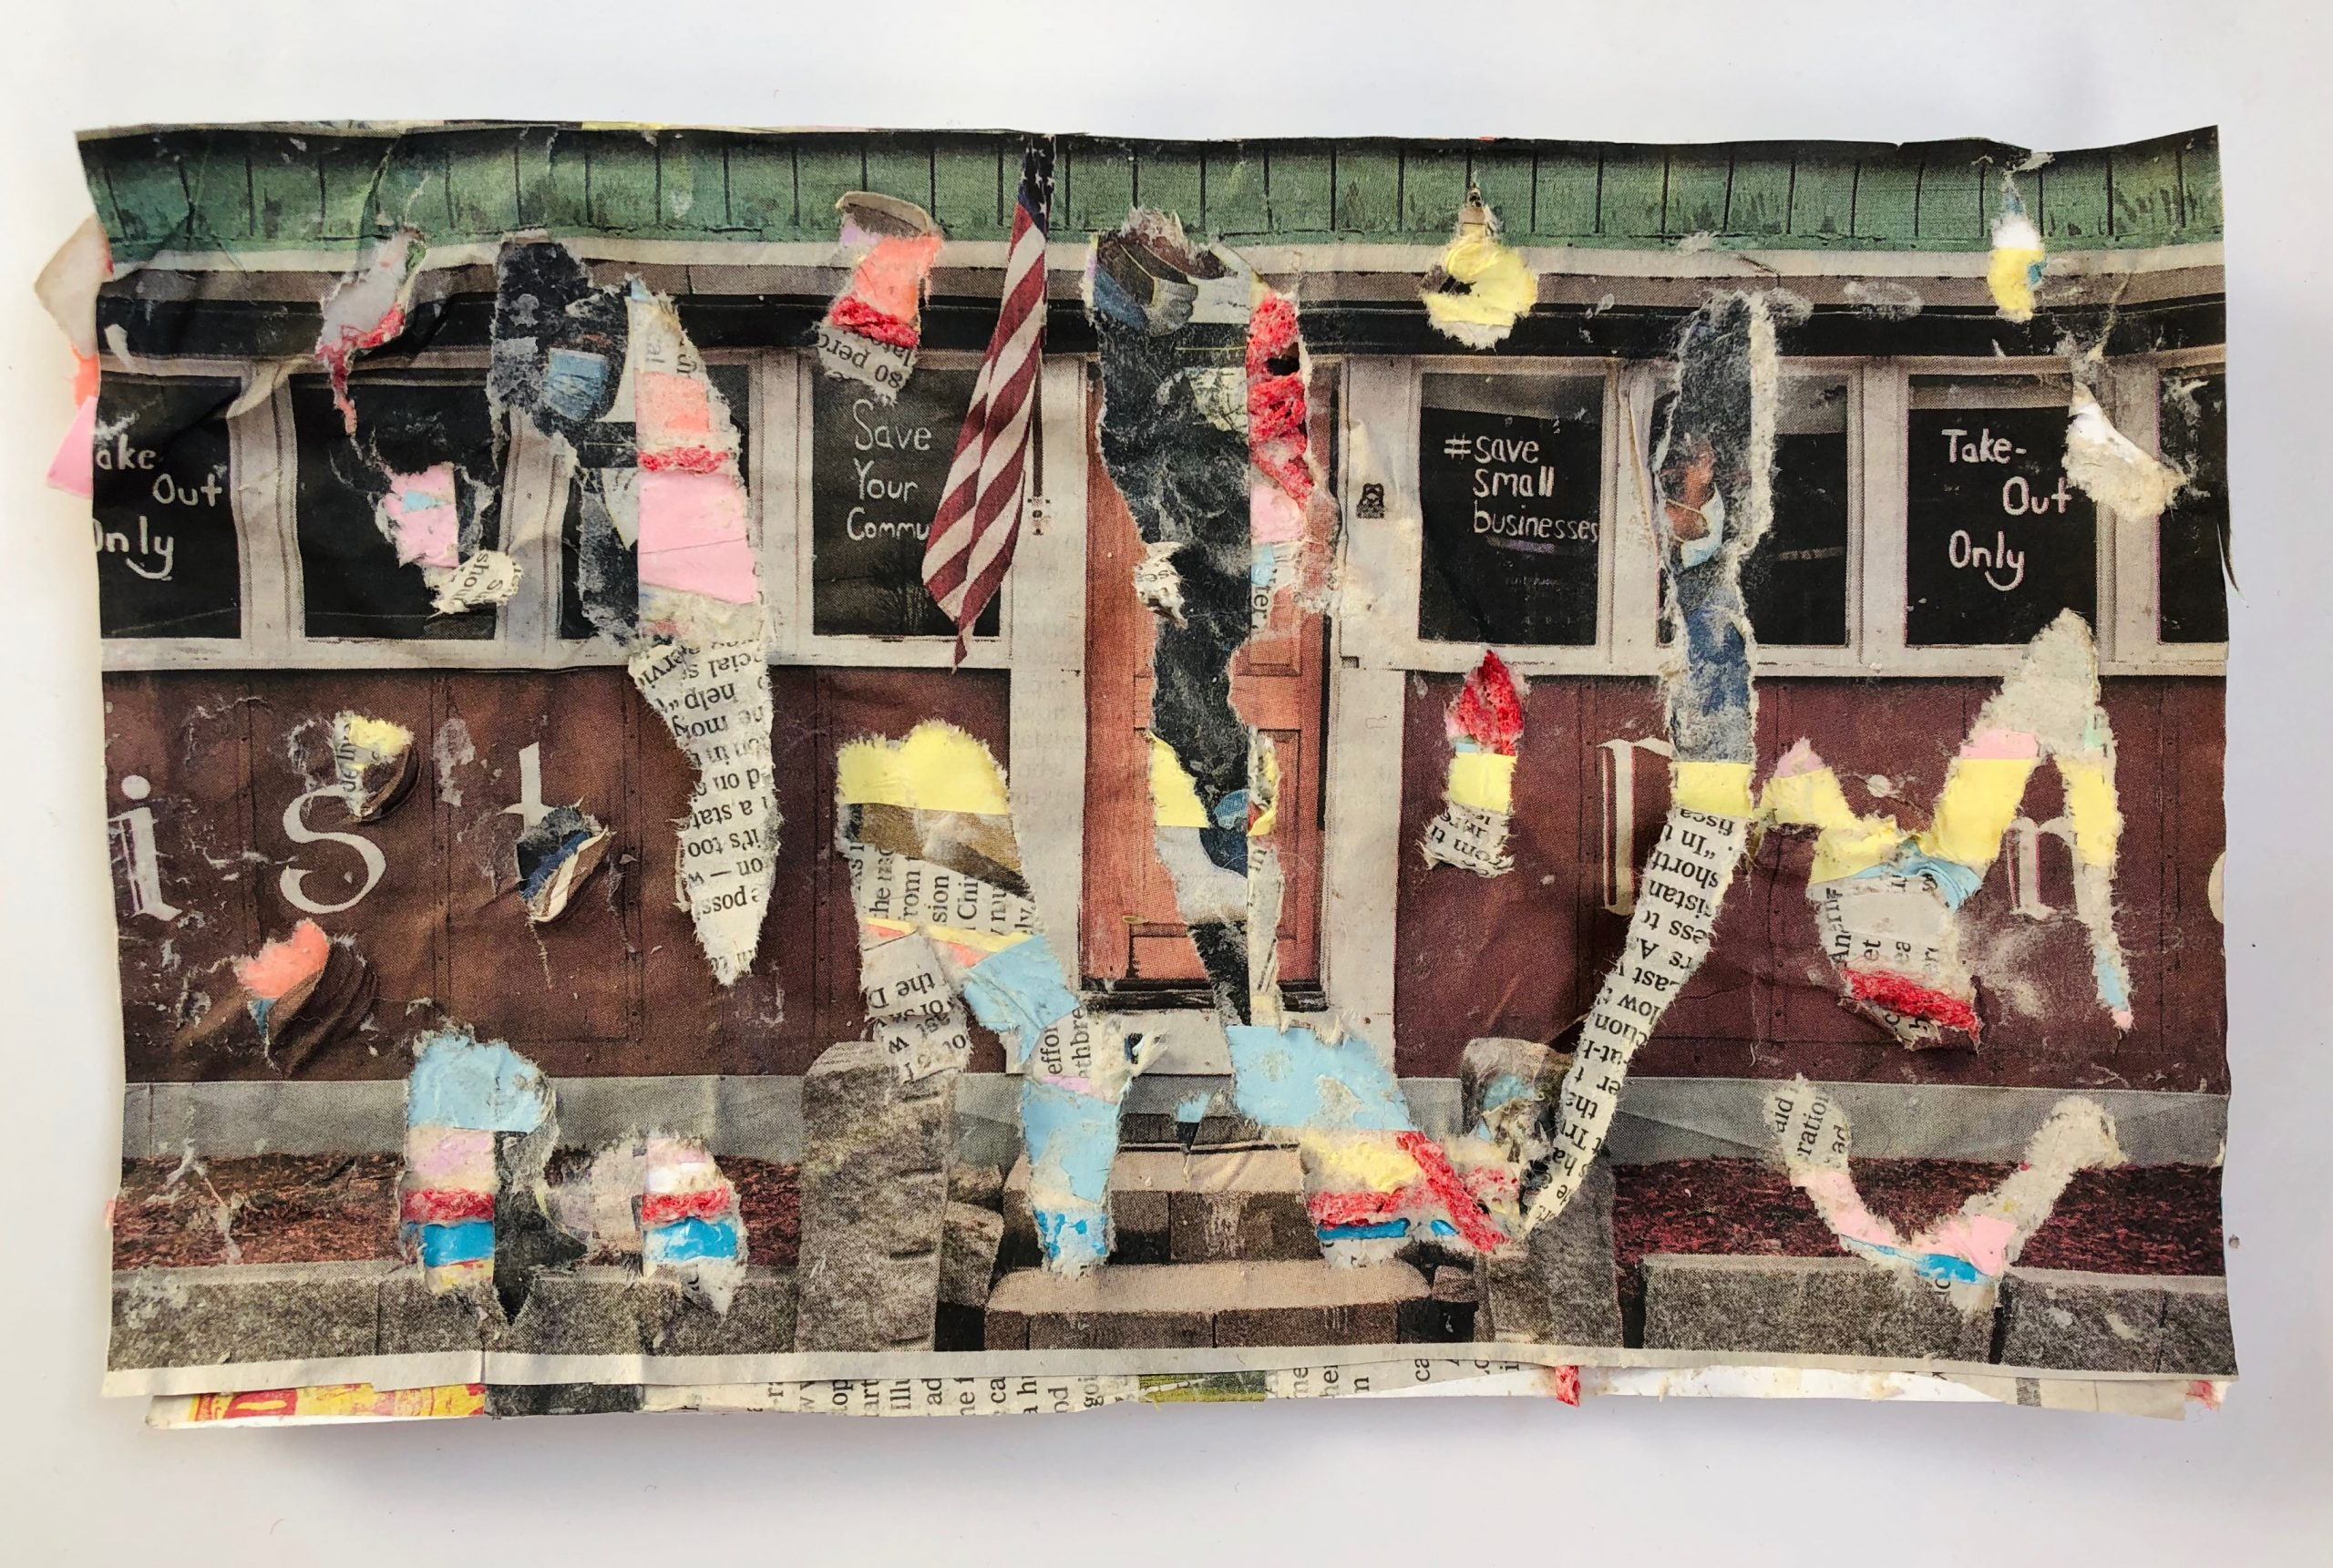 A newspaper clipping of a diner exterior is shredded to reveal other layers of newspaper, multicolored paper, and red yarn underneath